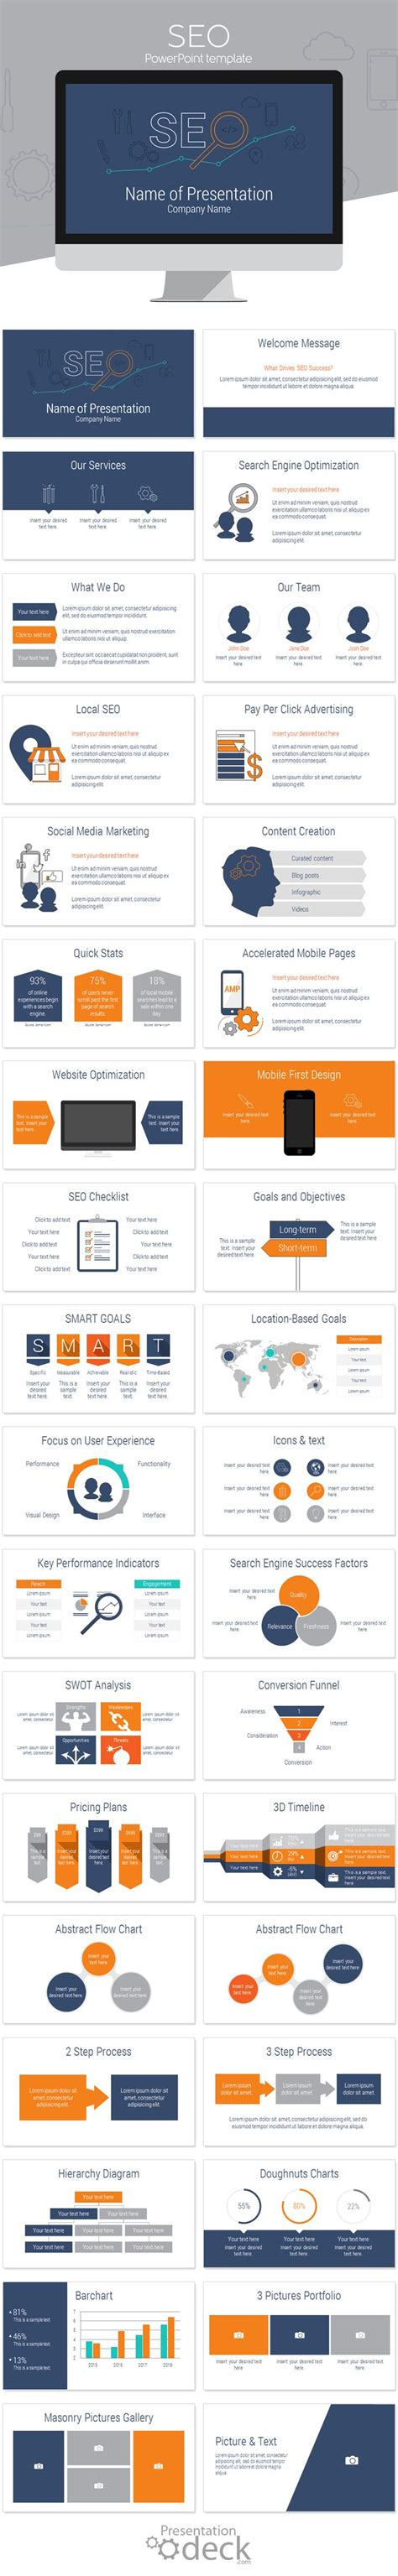 1000 Ideas About Poster Presentation Template On Pinterest Presentation Templates Poster Search Engine Website Template